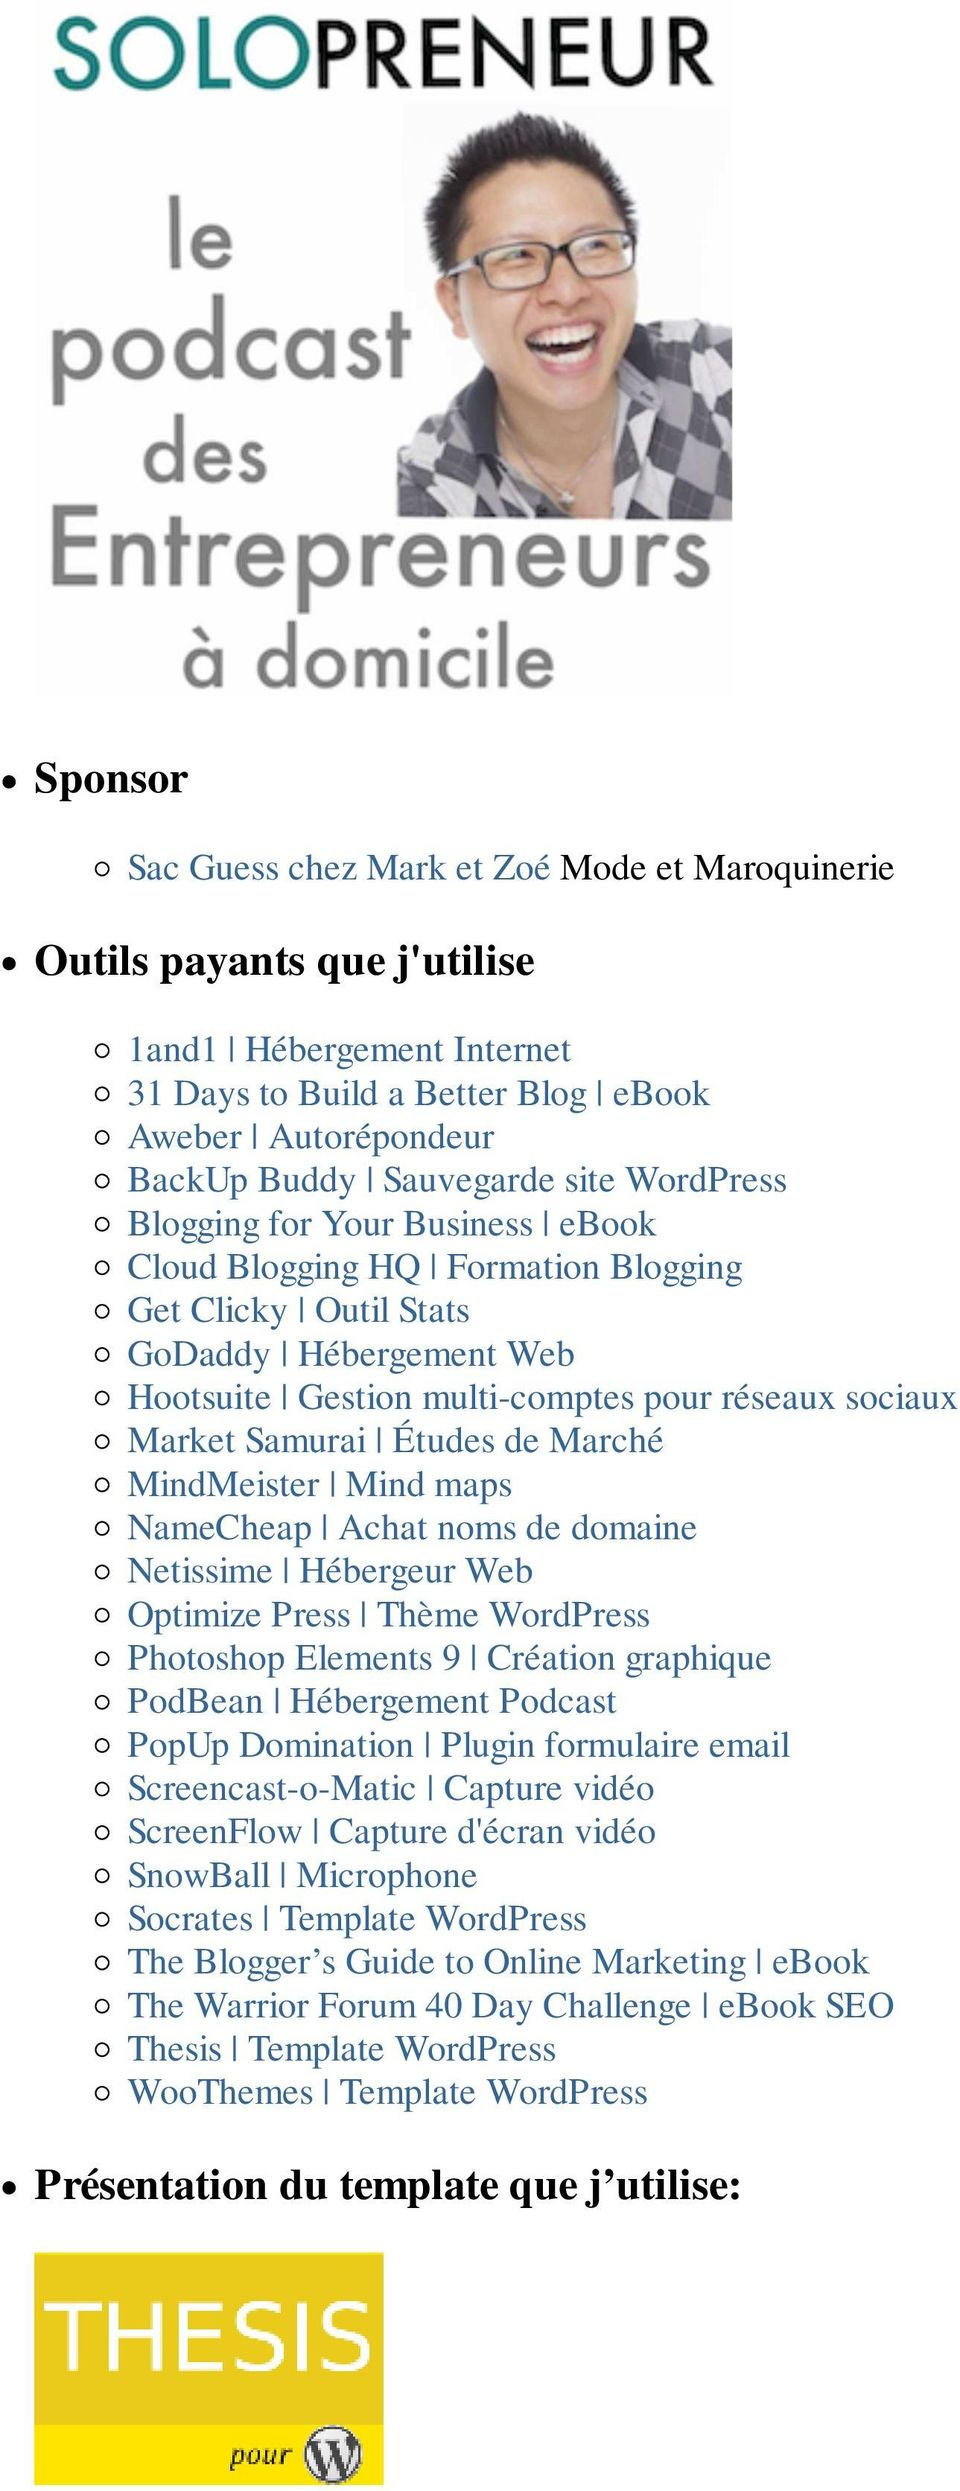 Études de Marché MindMeister Mind maps NameCheap Achat noms de domaine Netissime Hébergeur Web Optimize Press Thème WordPress Photoshop Elements 9 Création graphique PodBean Hébergement Podcast PopUp